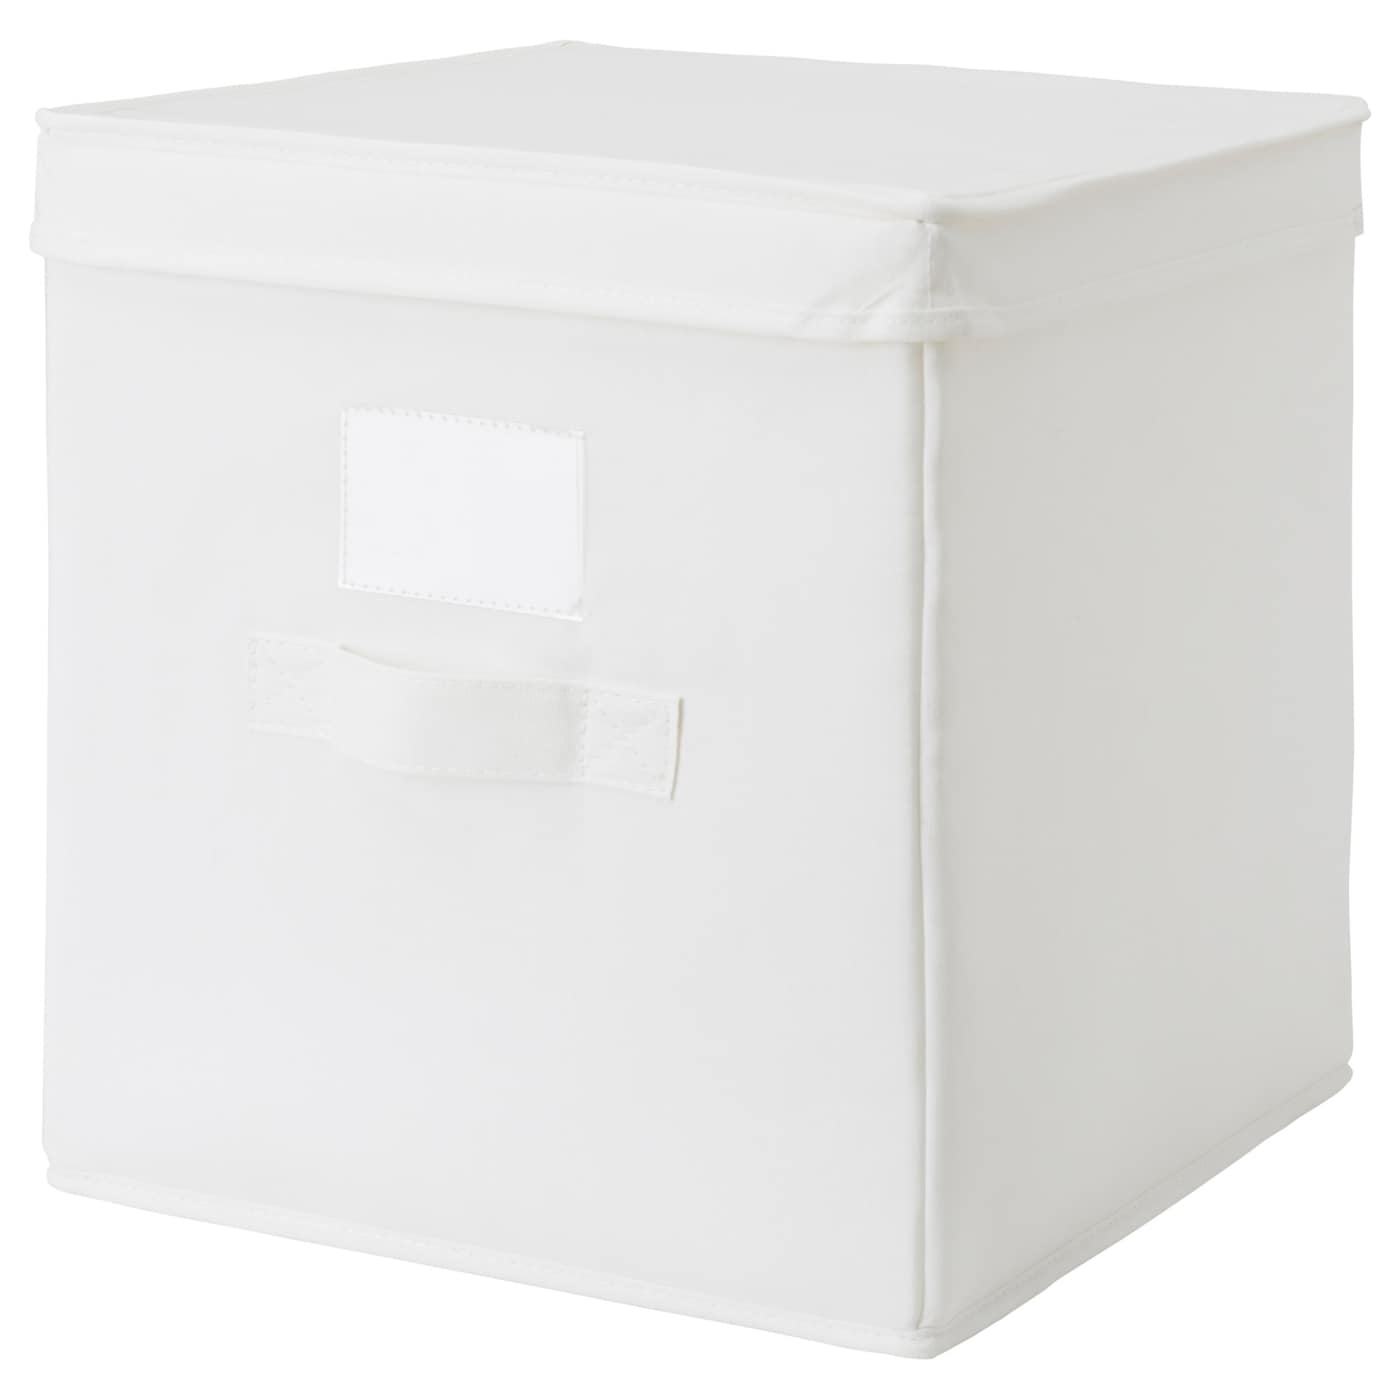 IKEA GARNITYR box with lid Easy to pull out as the box has a handle on the side.